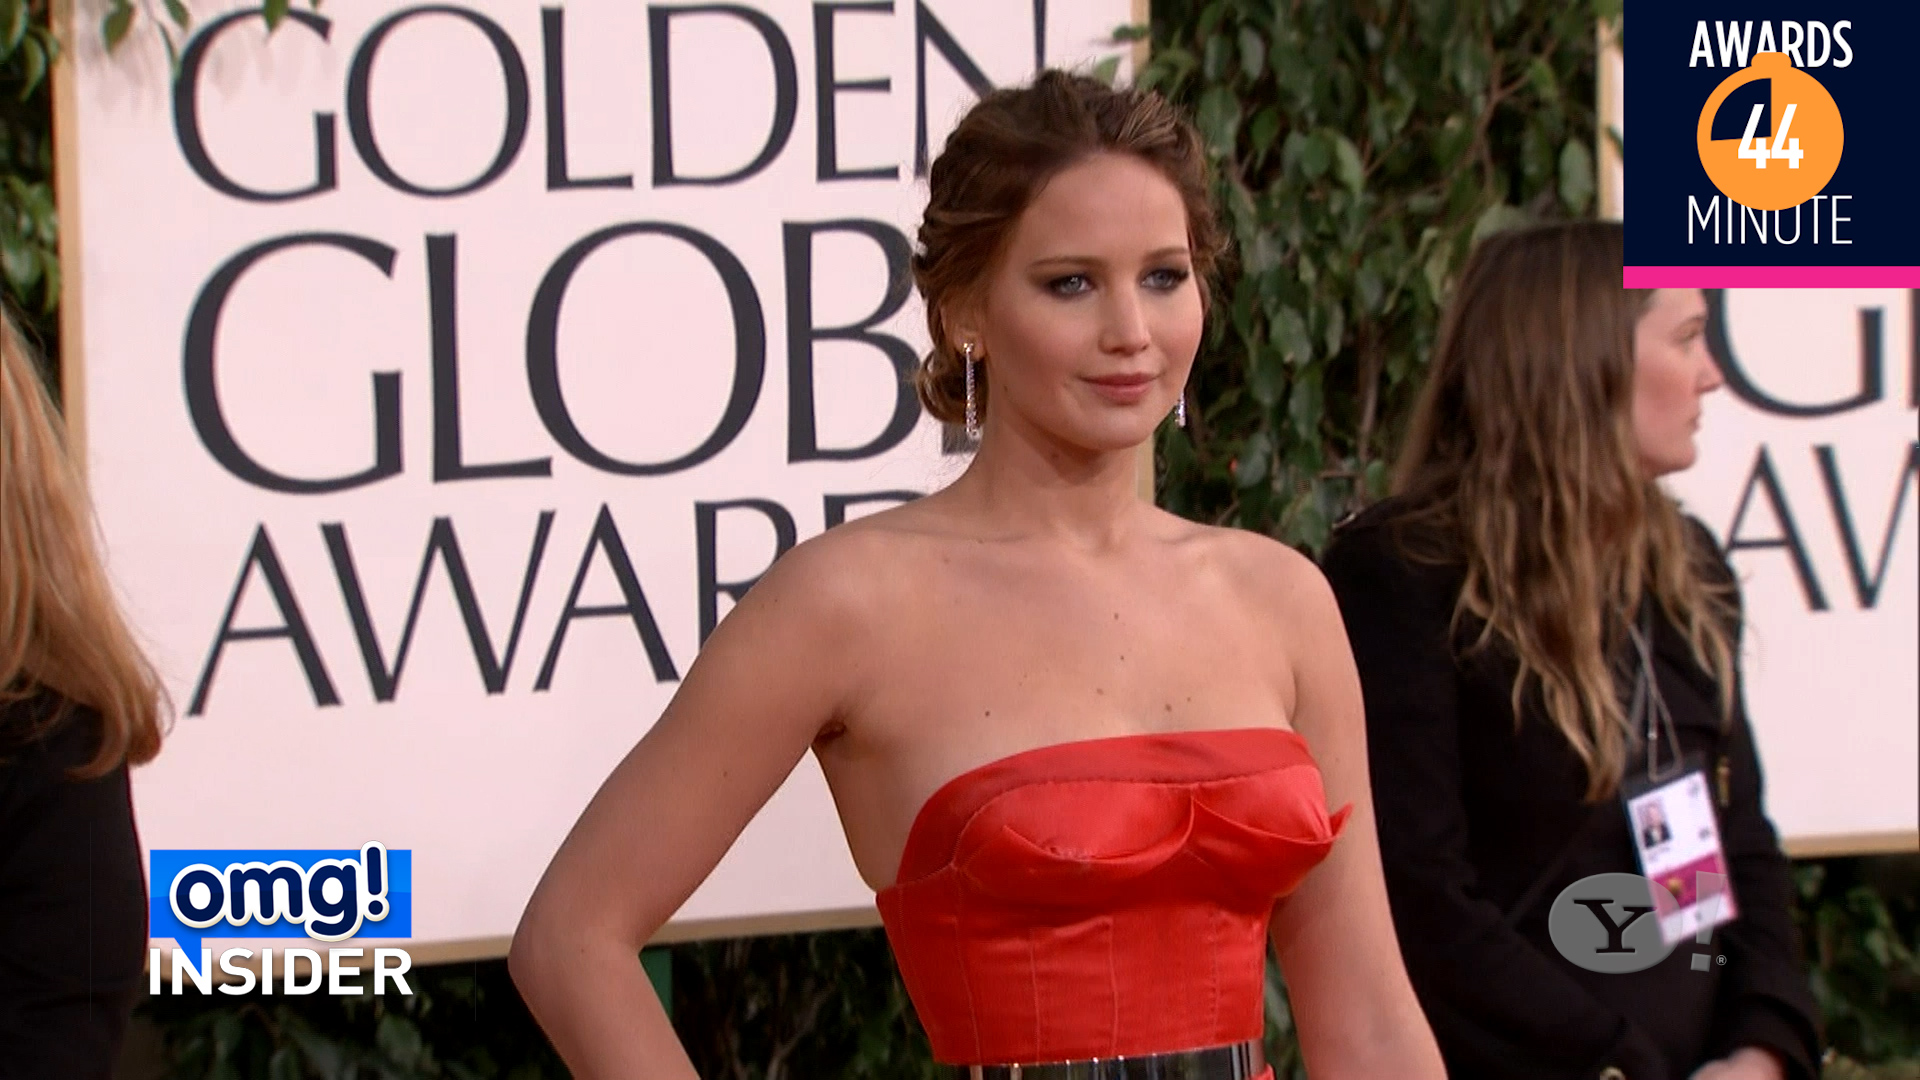 AWARDS MINUTE: Jennifer Lawrence's awards show style